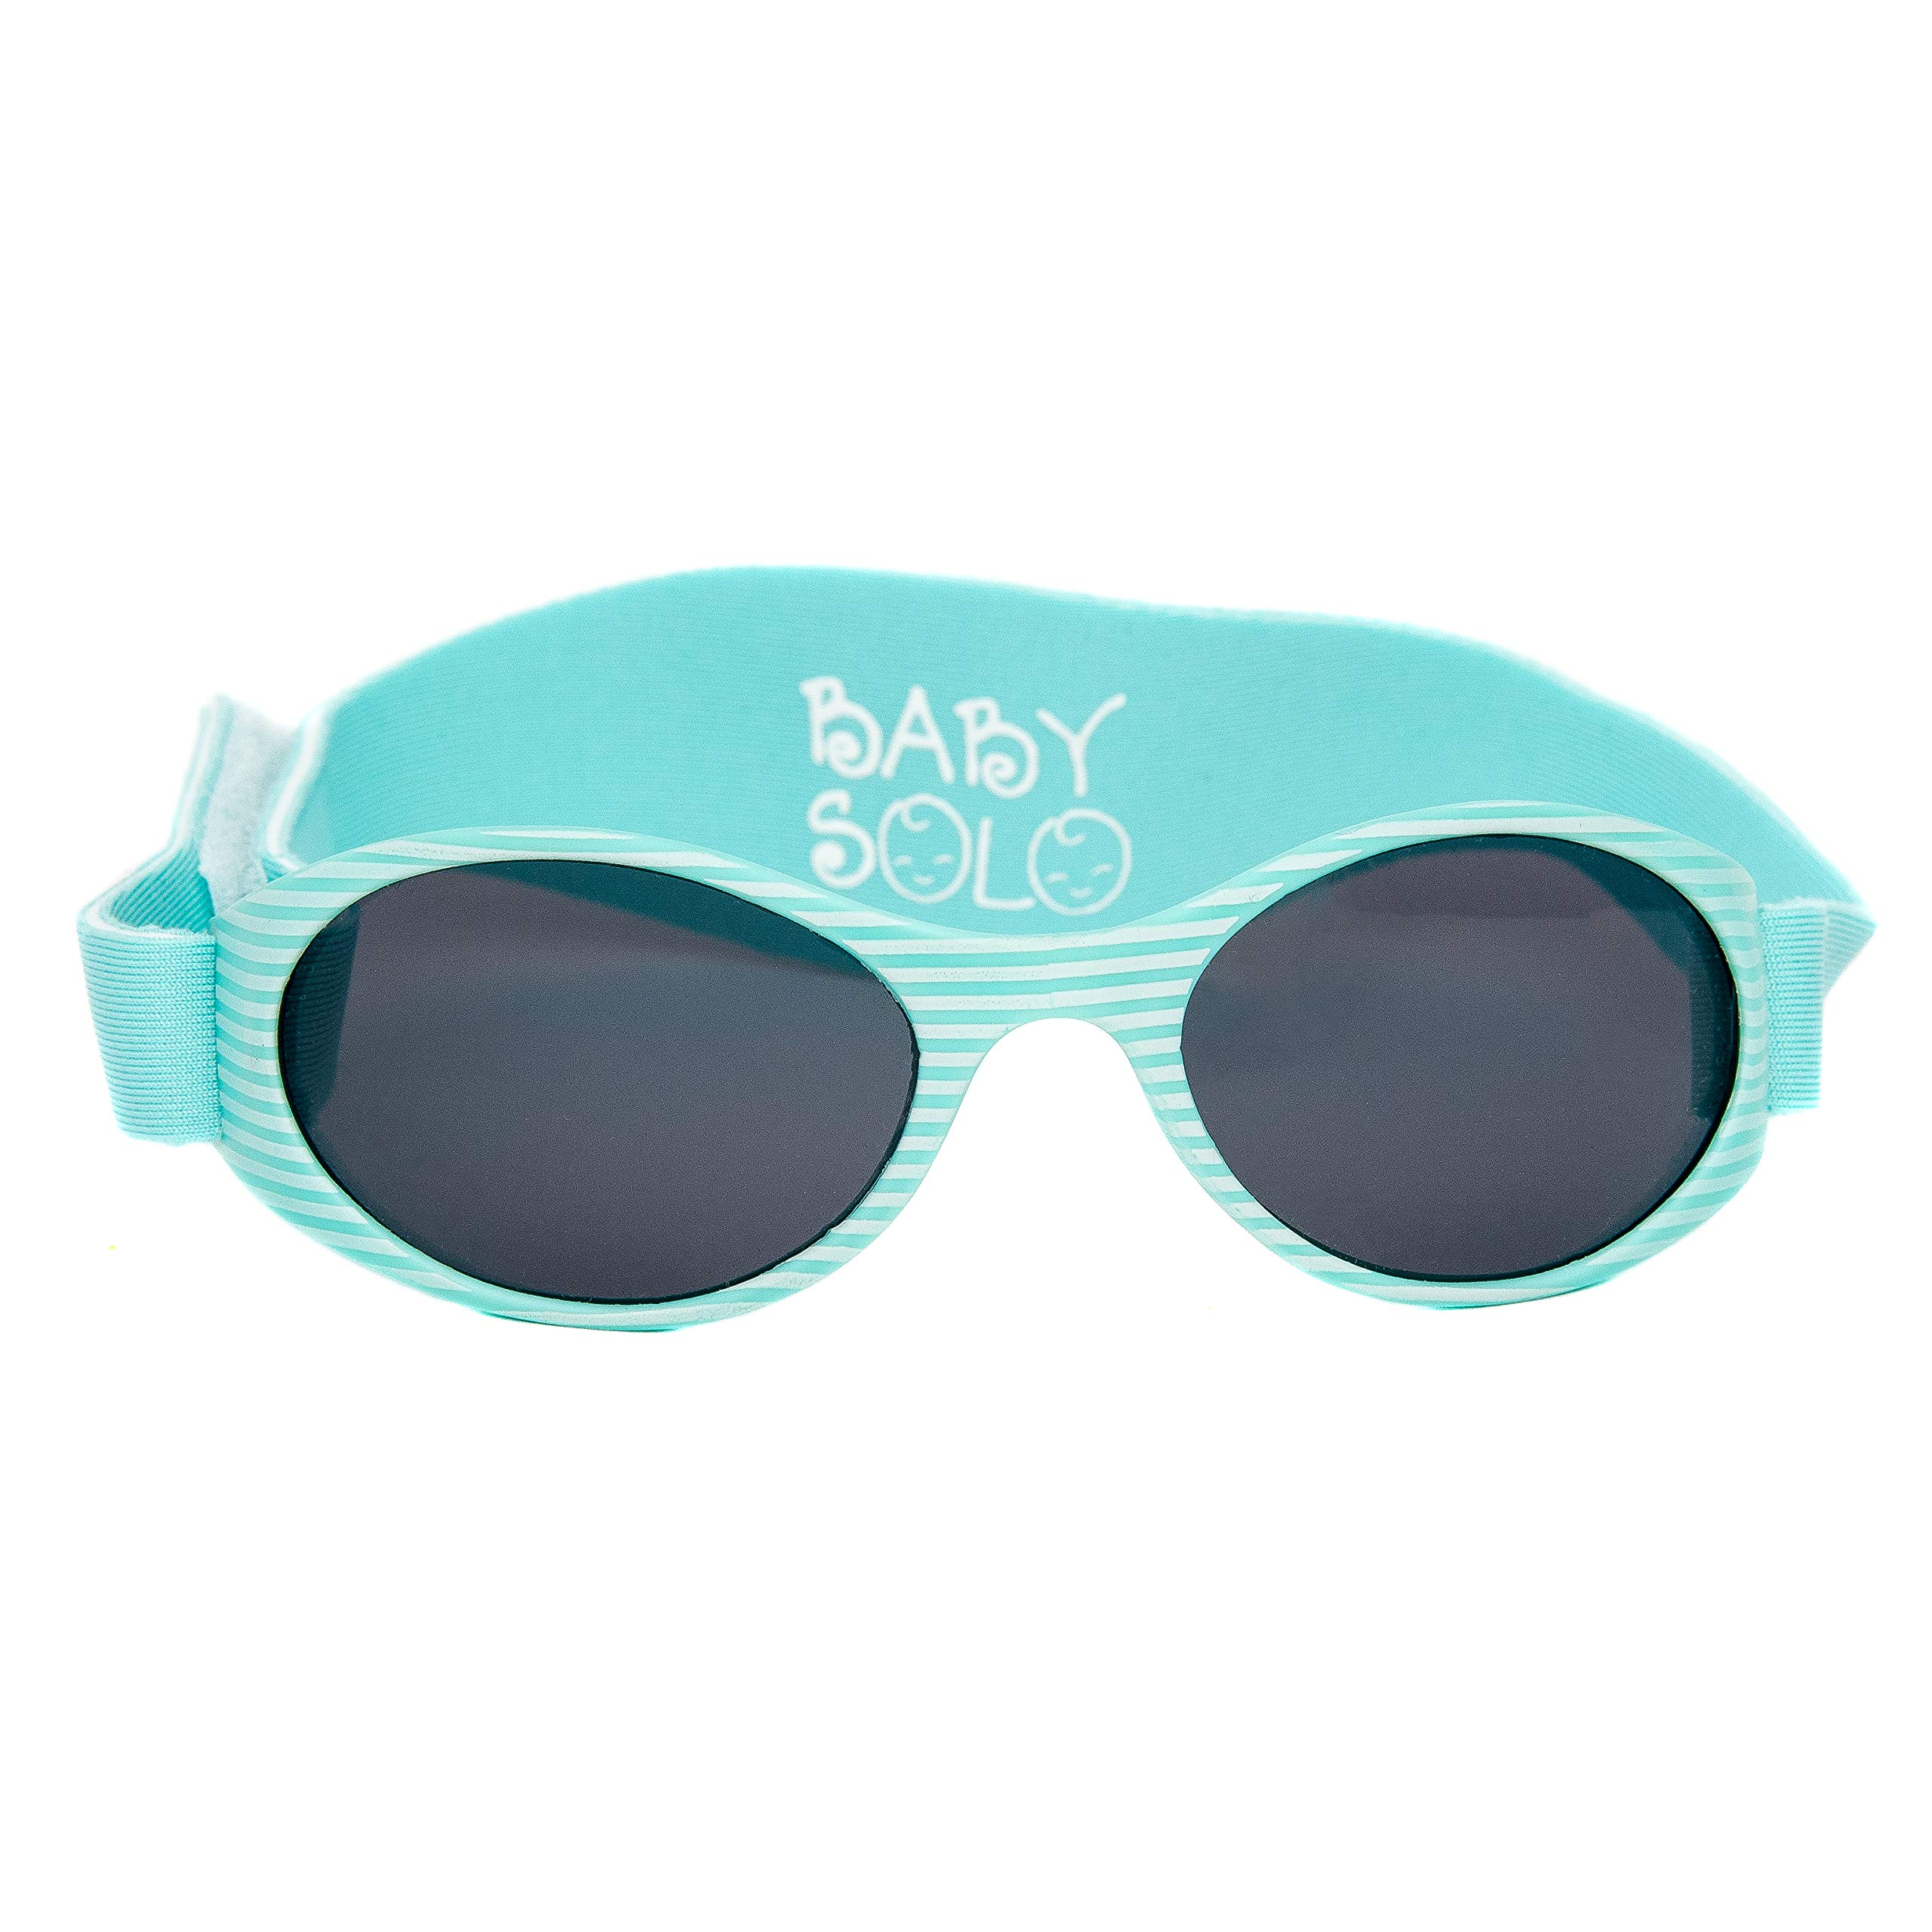 Baby Solo Sunglasses with strap Matte Aqua Stripes Frame w/Solid Black Lens